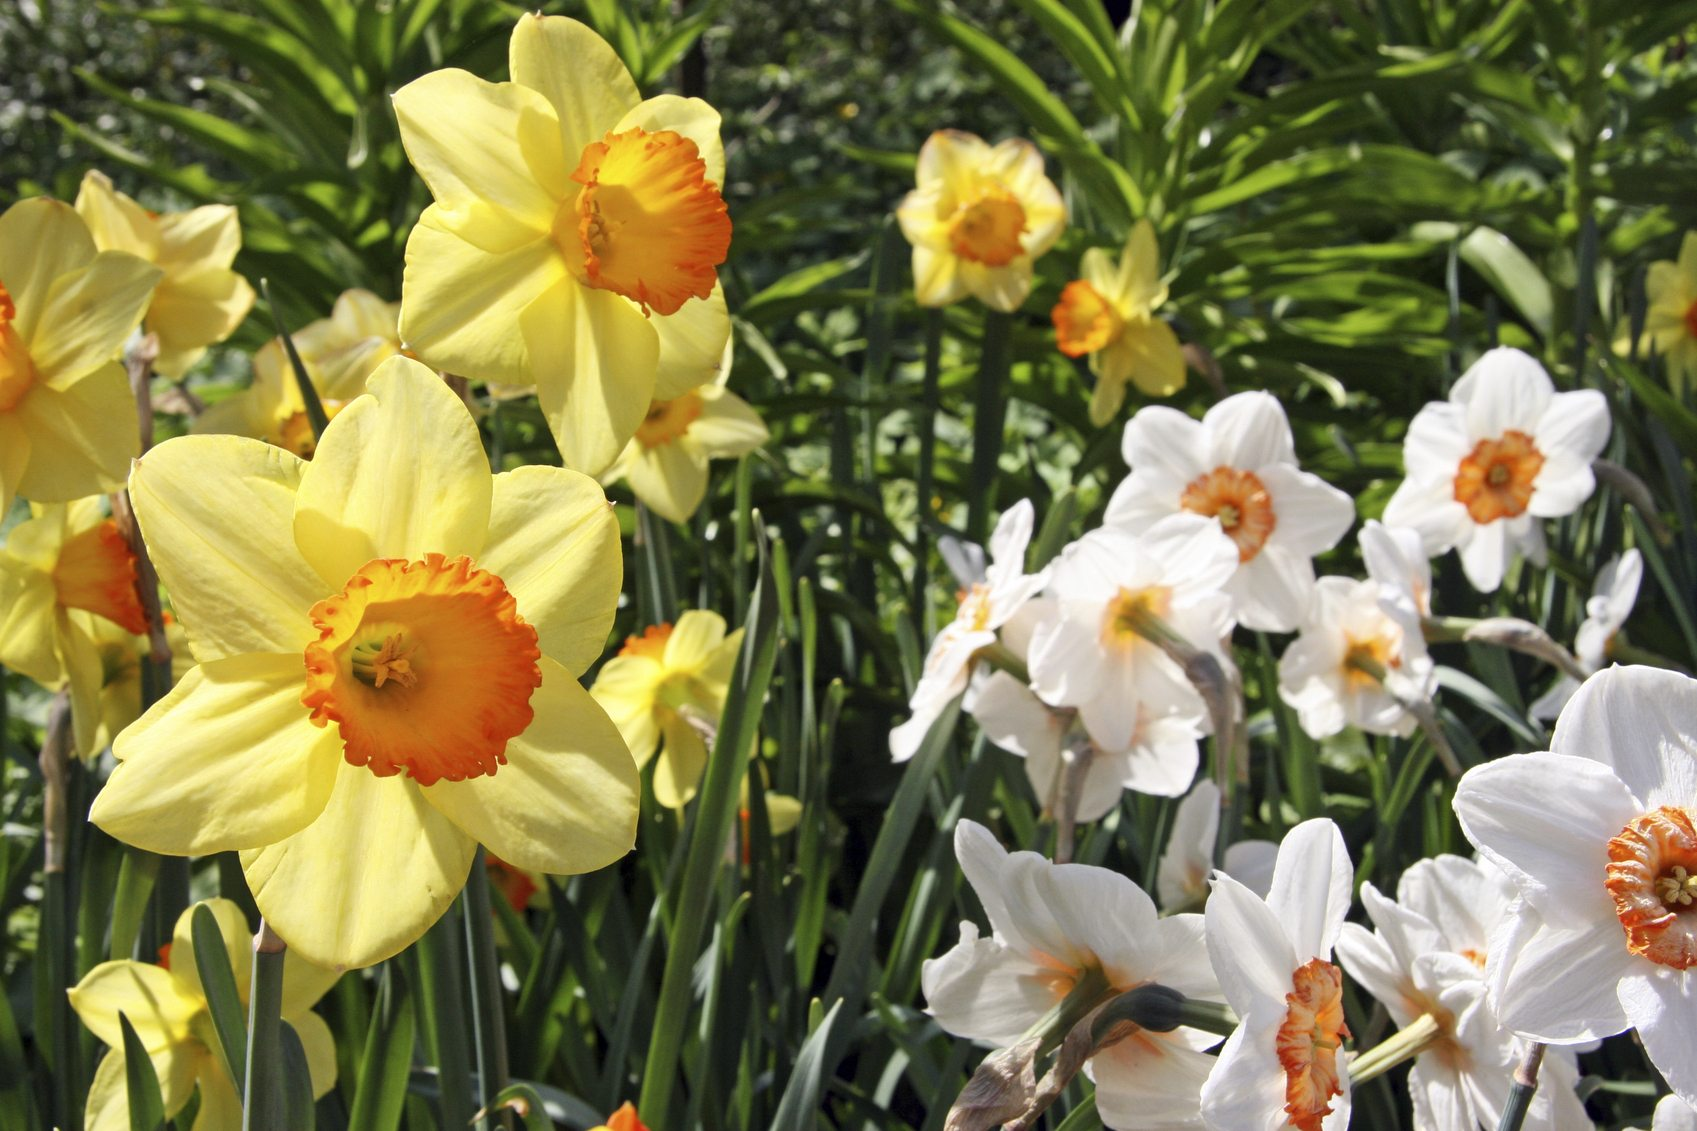 Daffodil Plant Facts What Are Some Different Types Of Daffodils